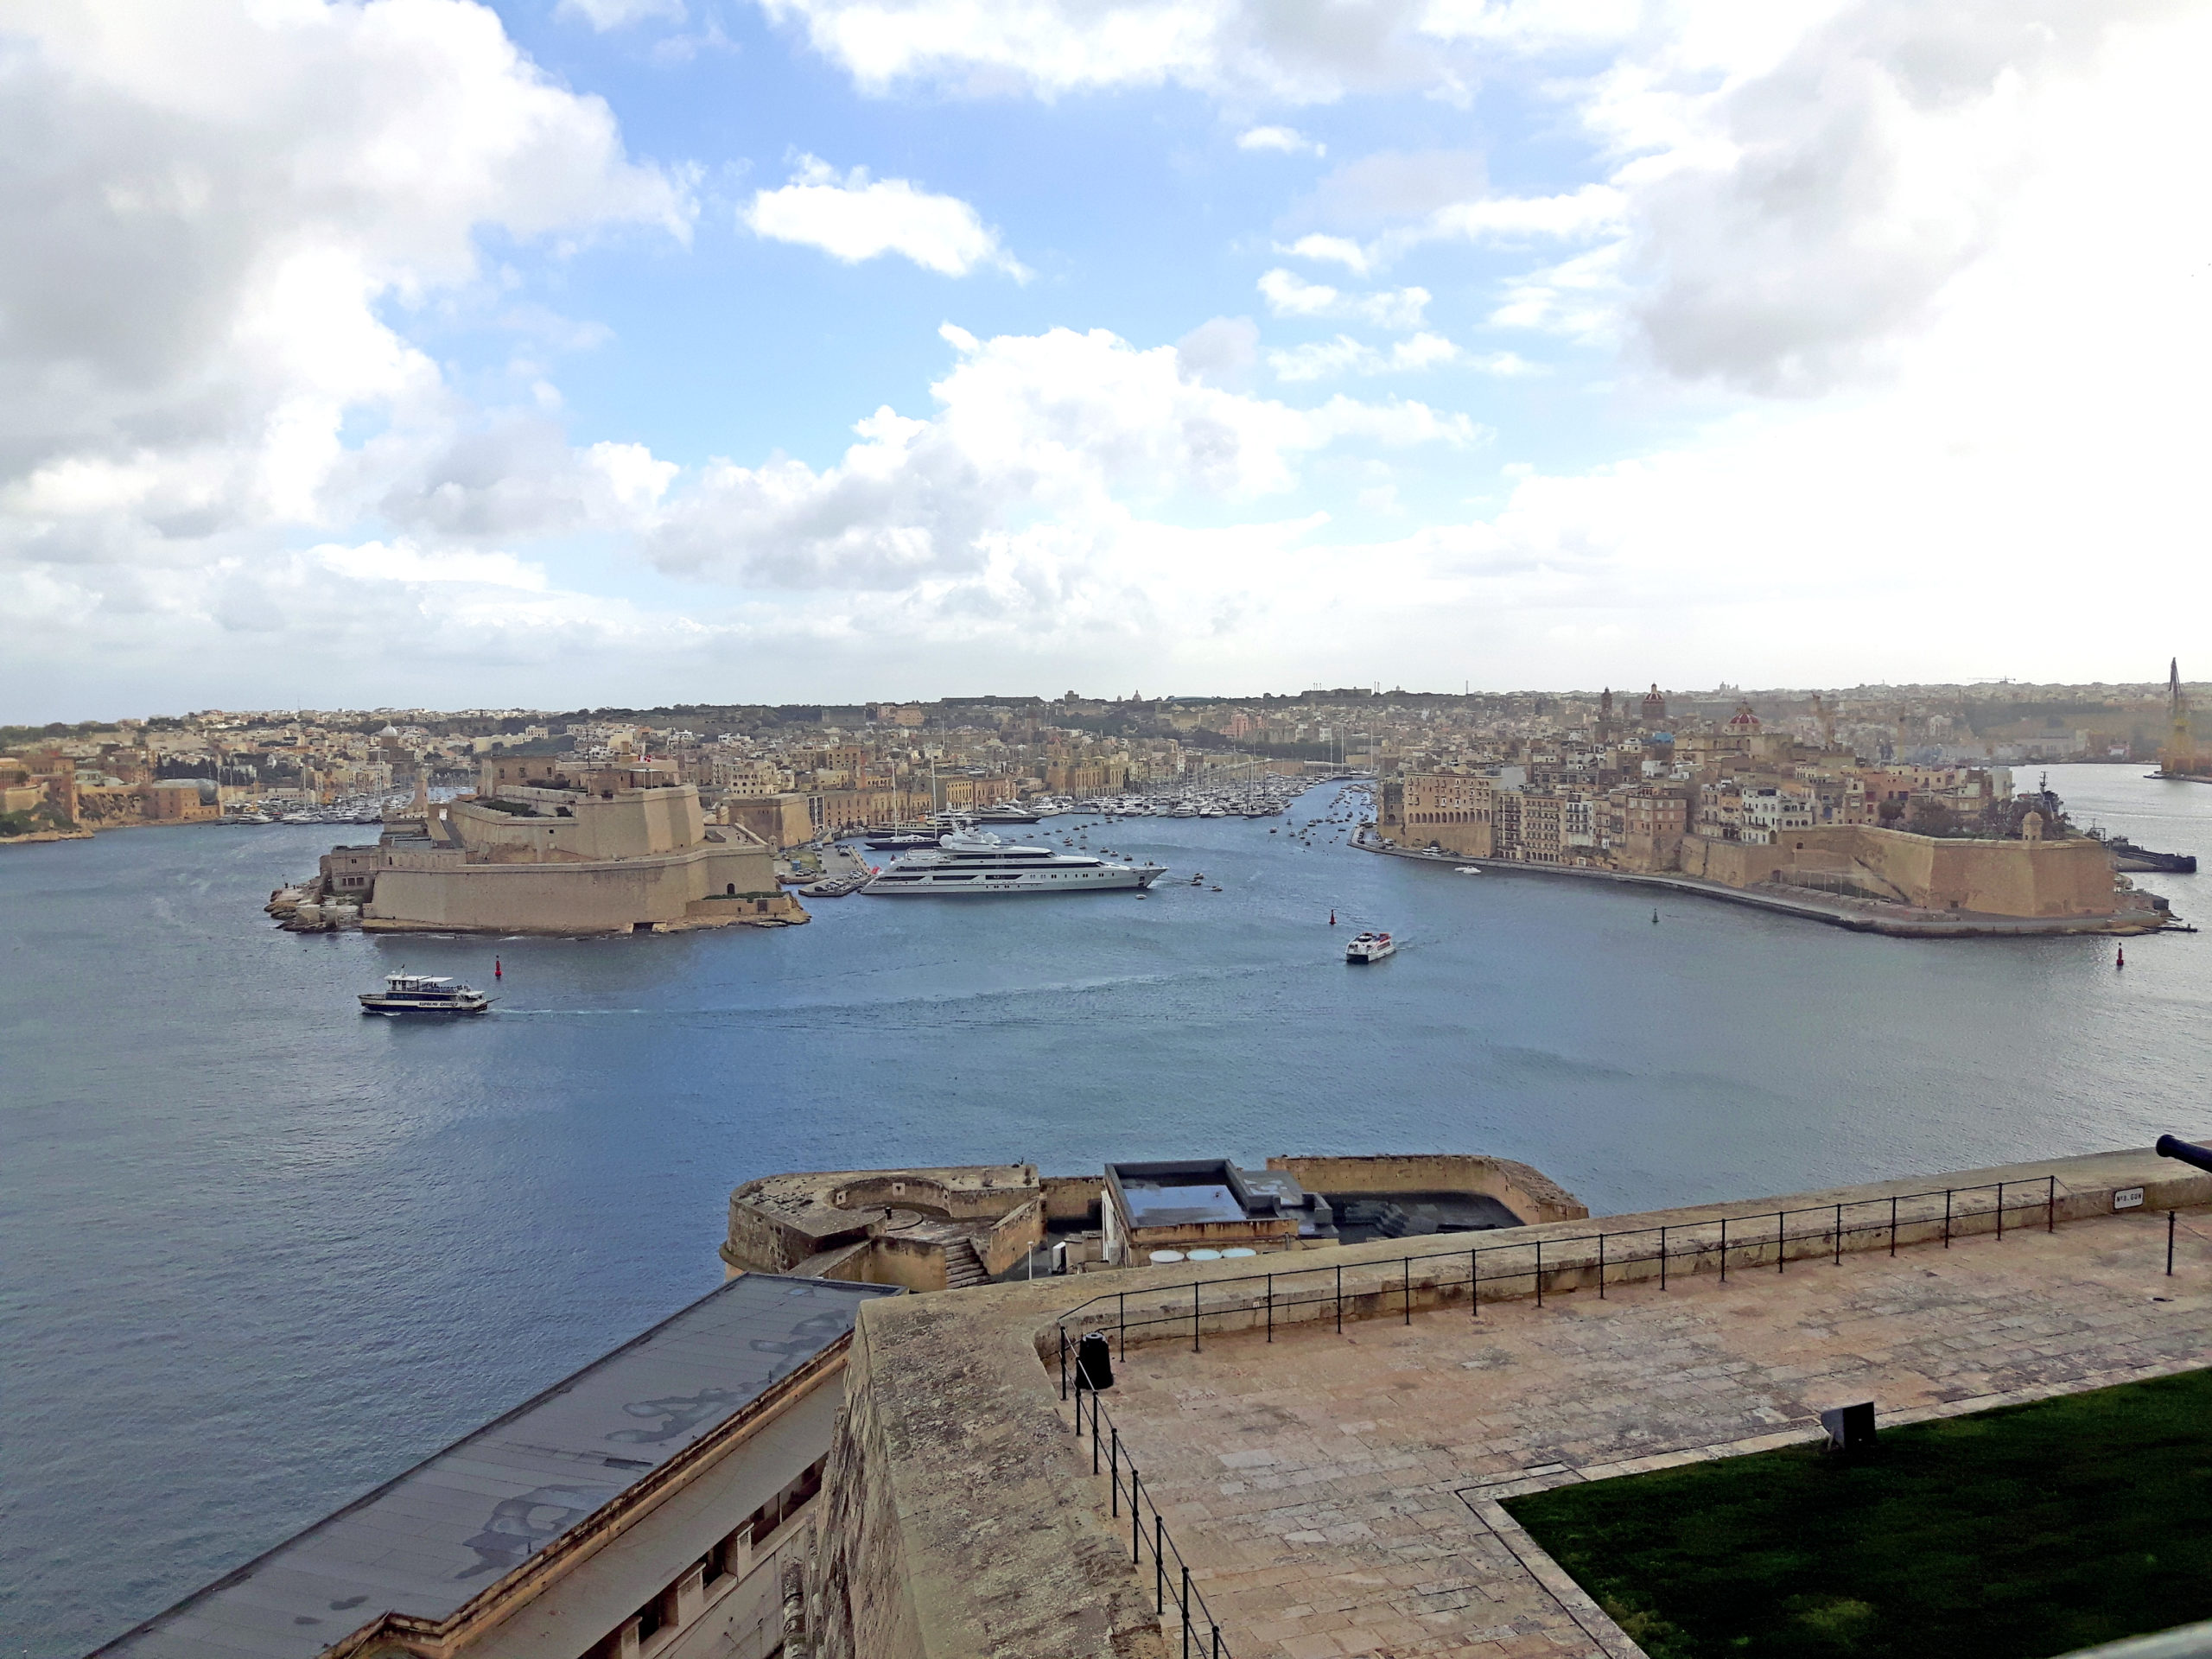 Things_To_Do_While_Visiting_Malta